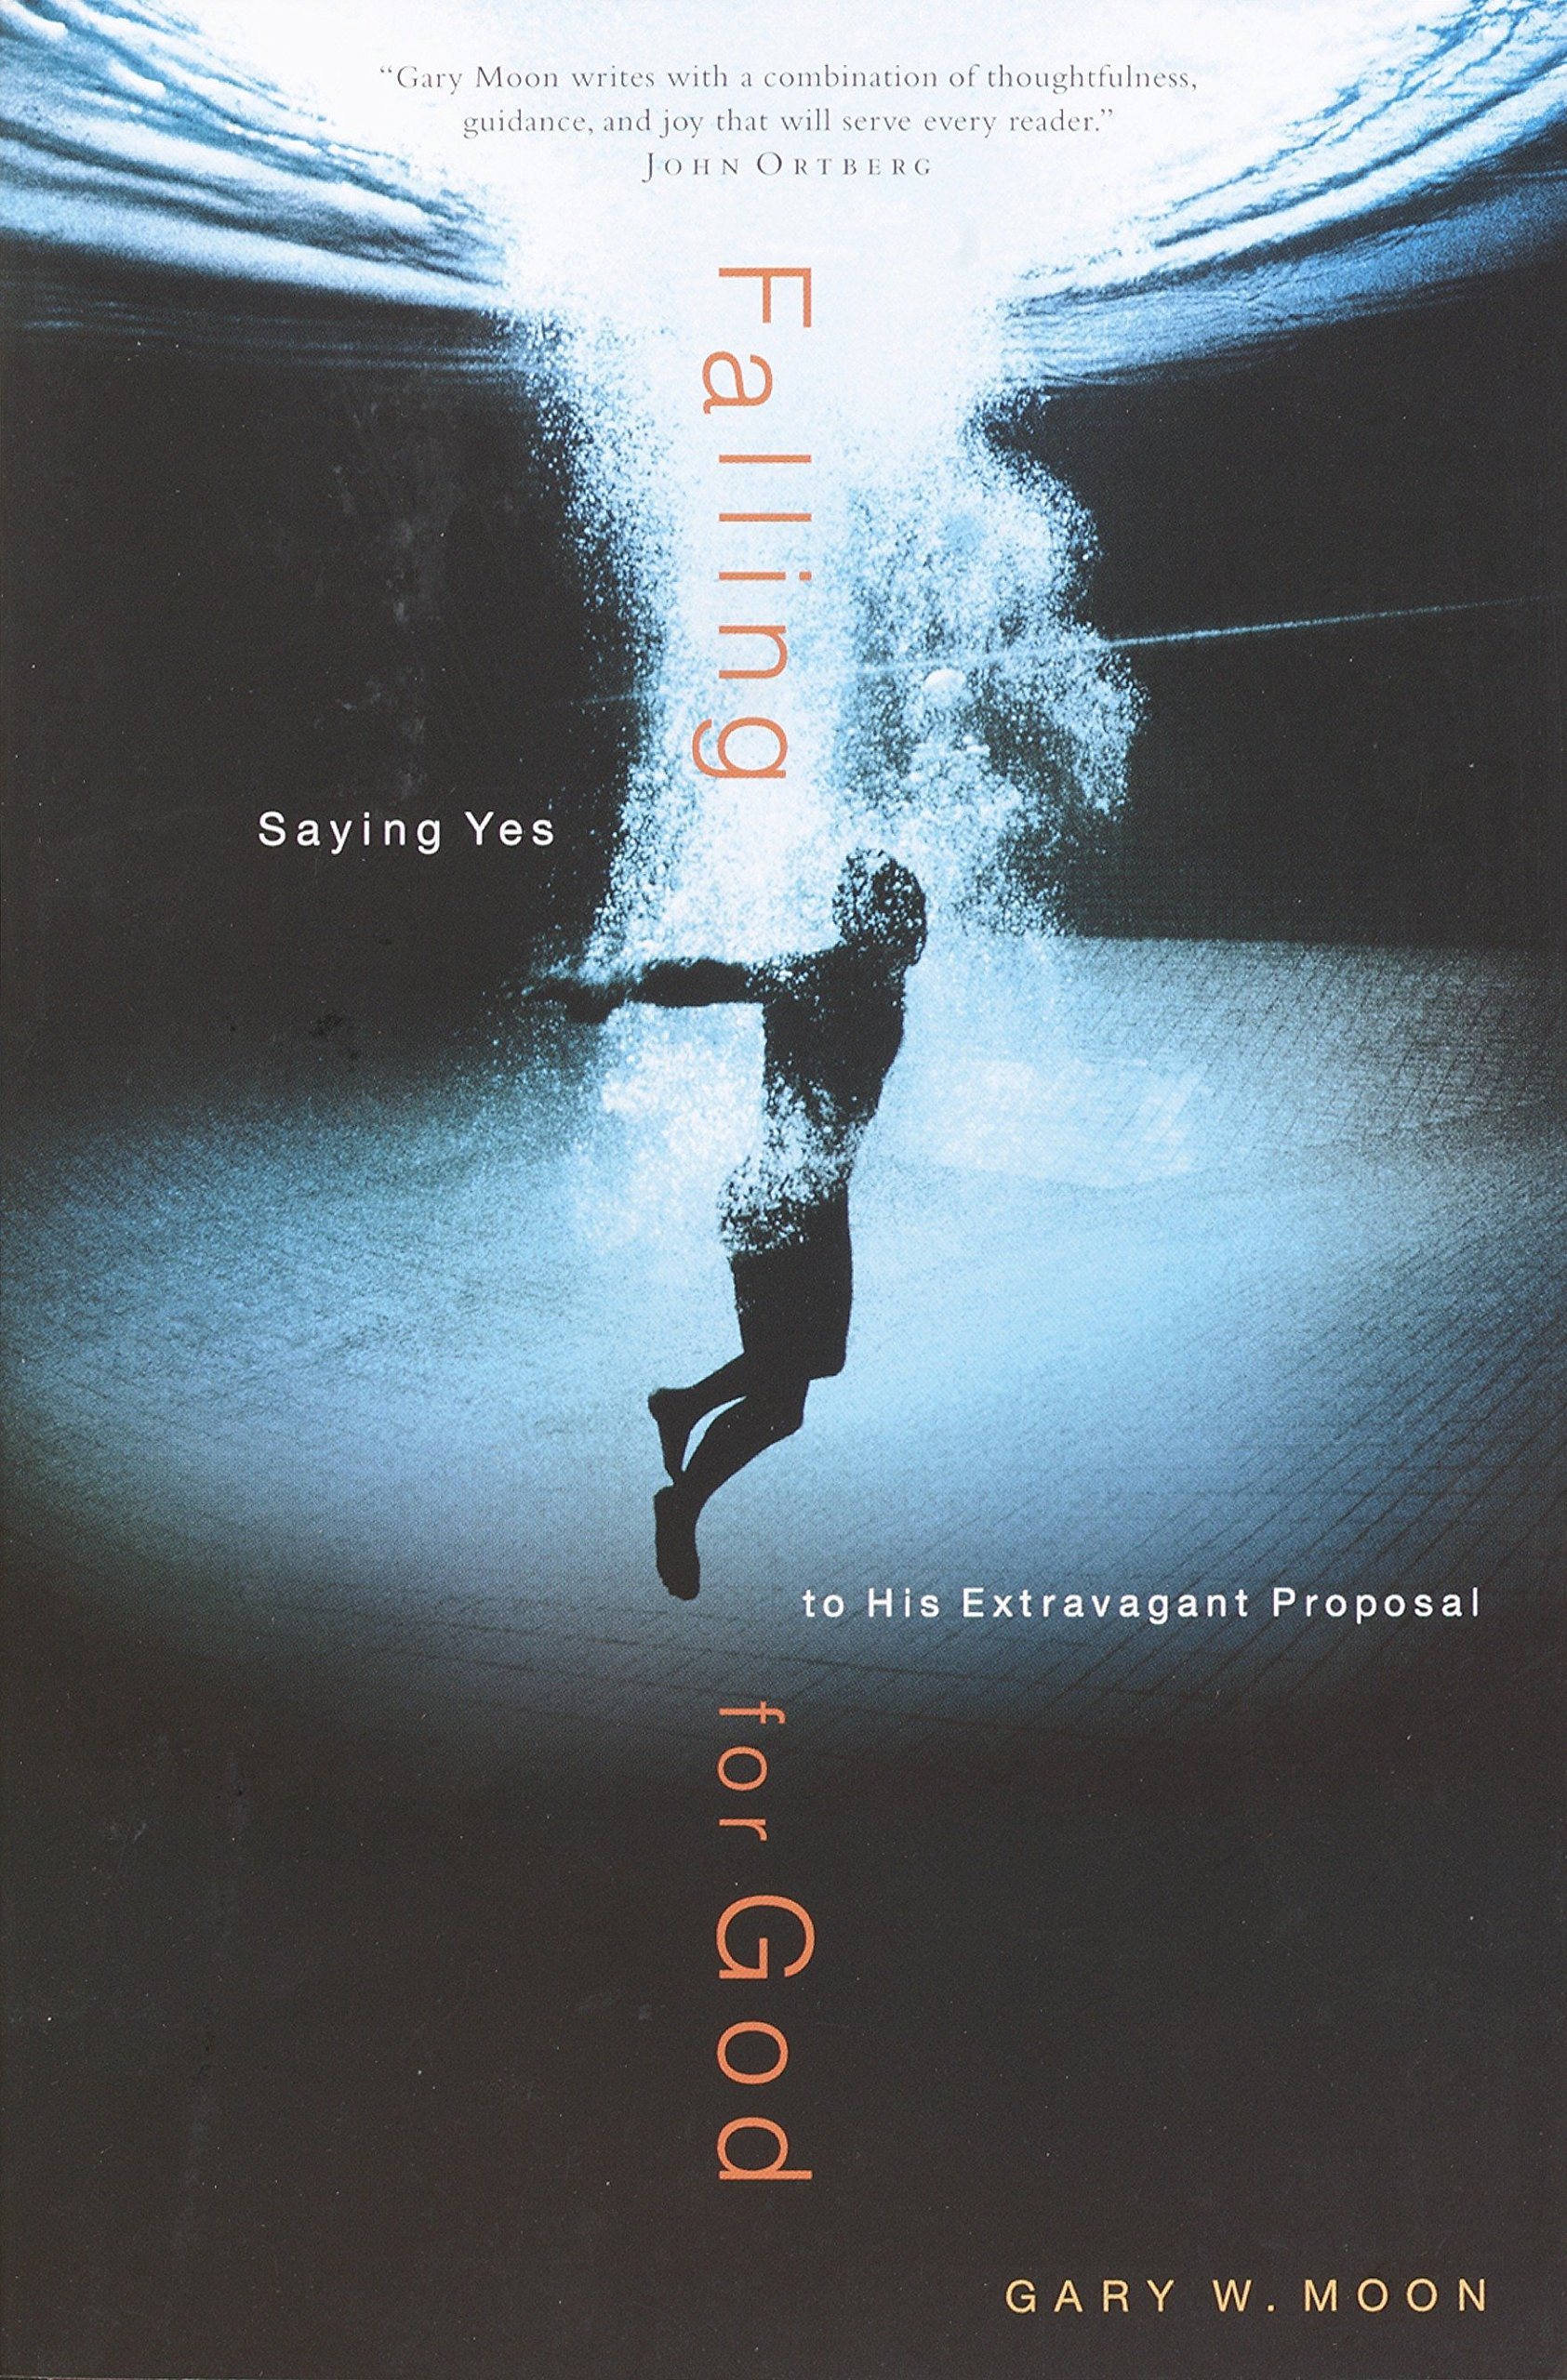 Falling for God: Saying Yes to His Extravagant Proposal: Amazon.es: Gary W. Moon: Libros en idiomas extranjeros